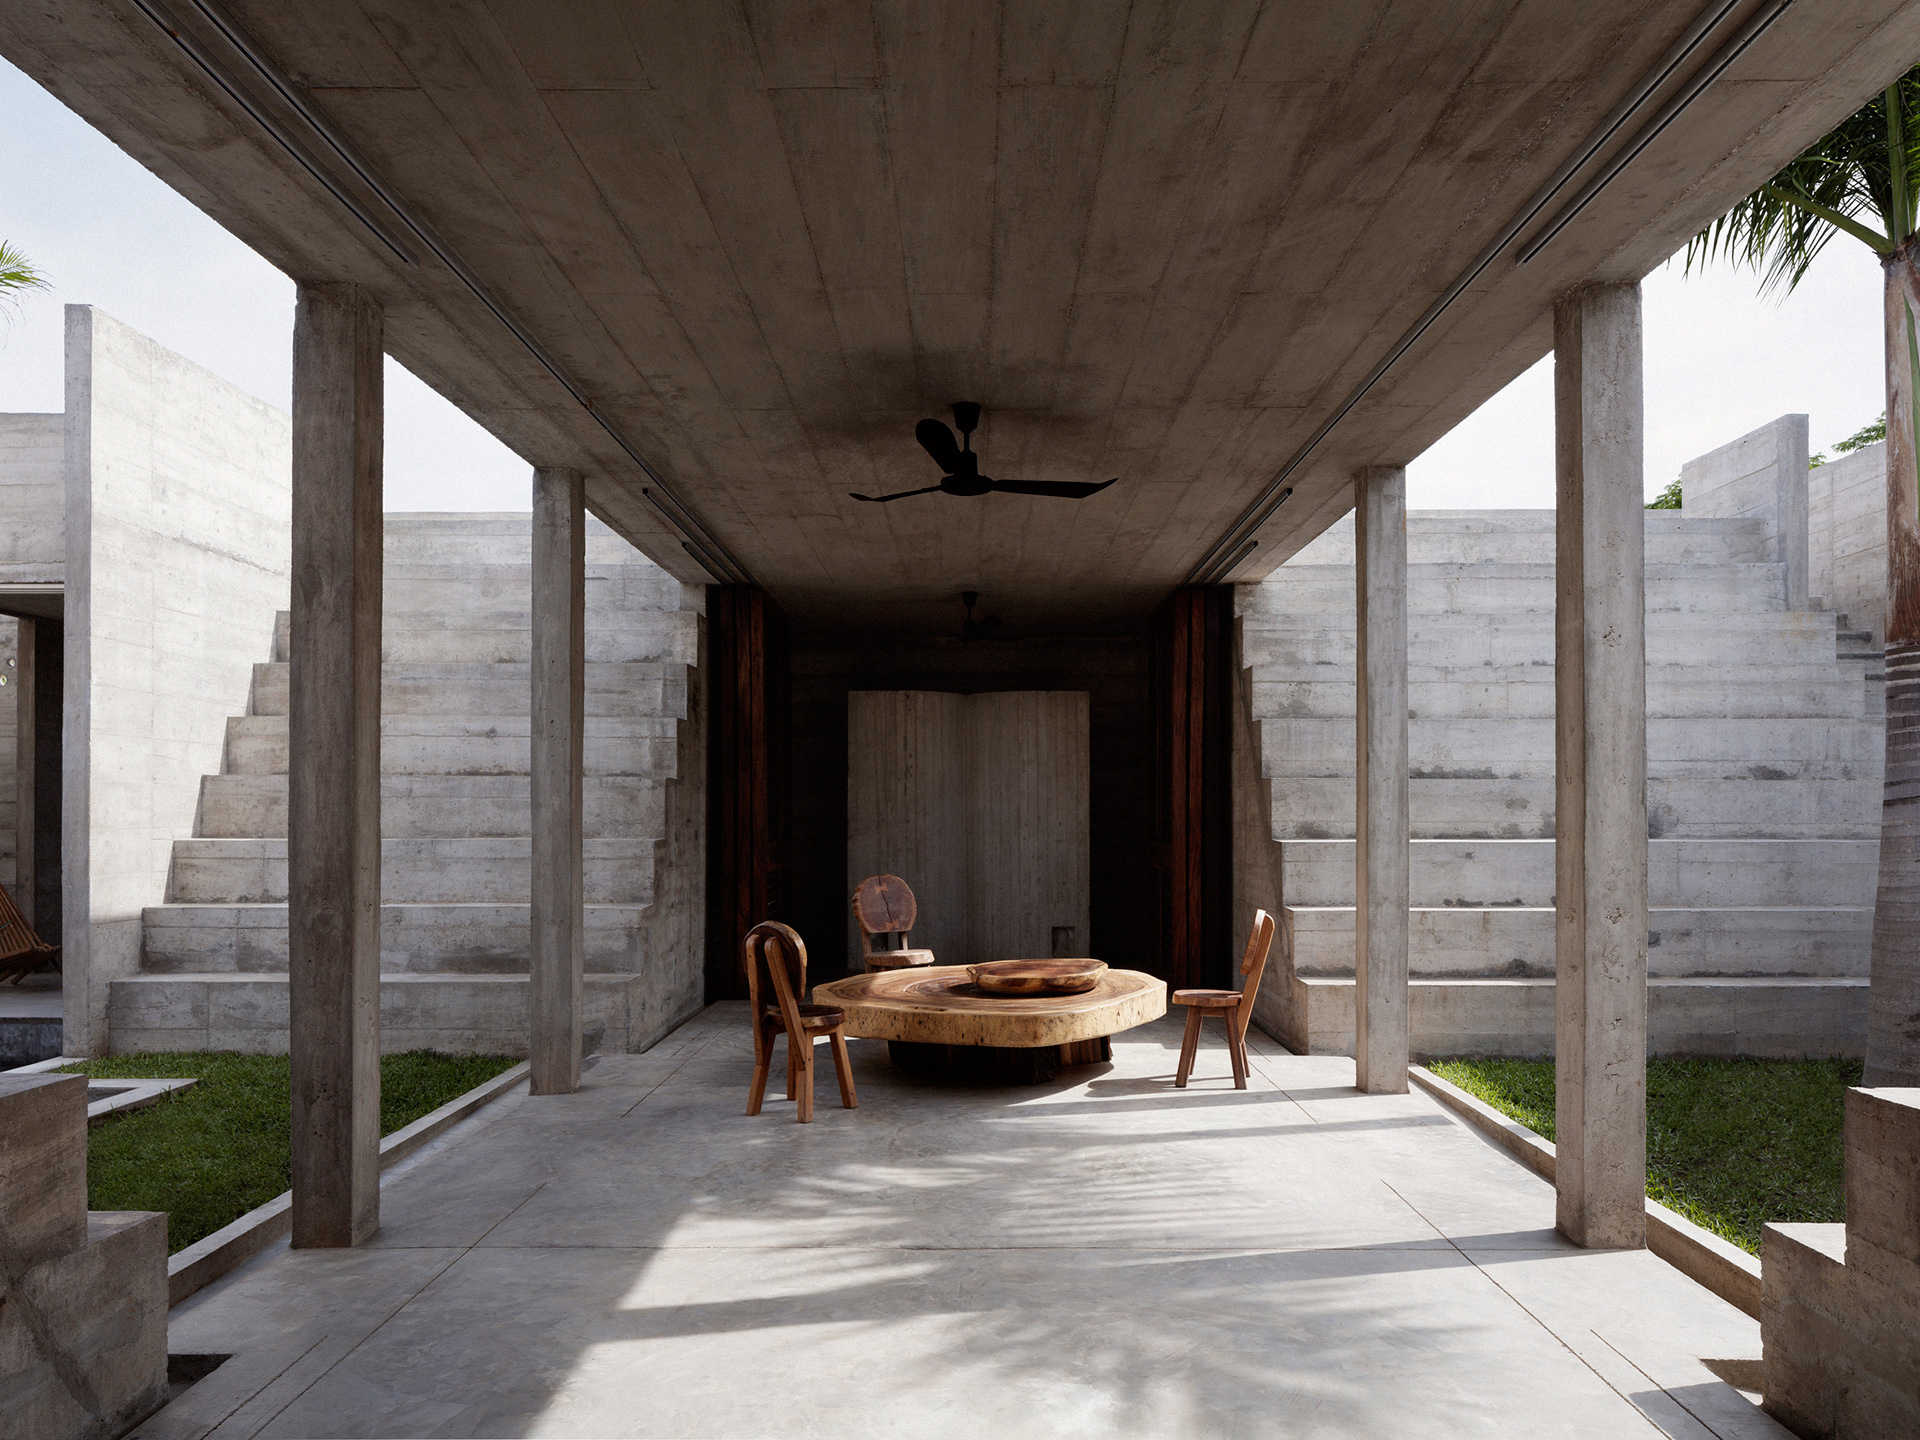 The central thoroughfare becomes the social connecting space | Zicatela House | Mexico | Ludwig Godefroy |STIRworld